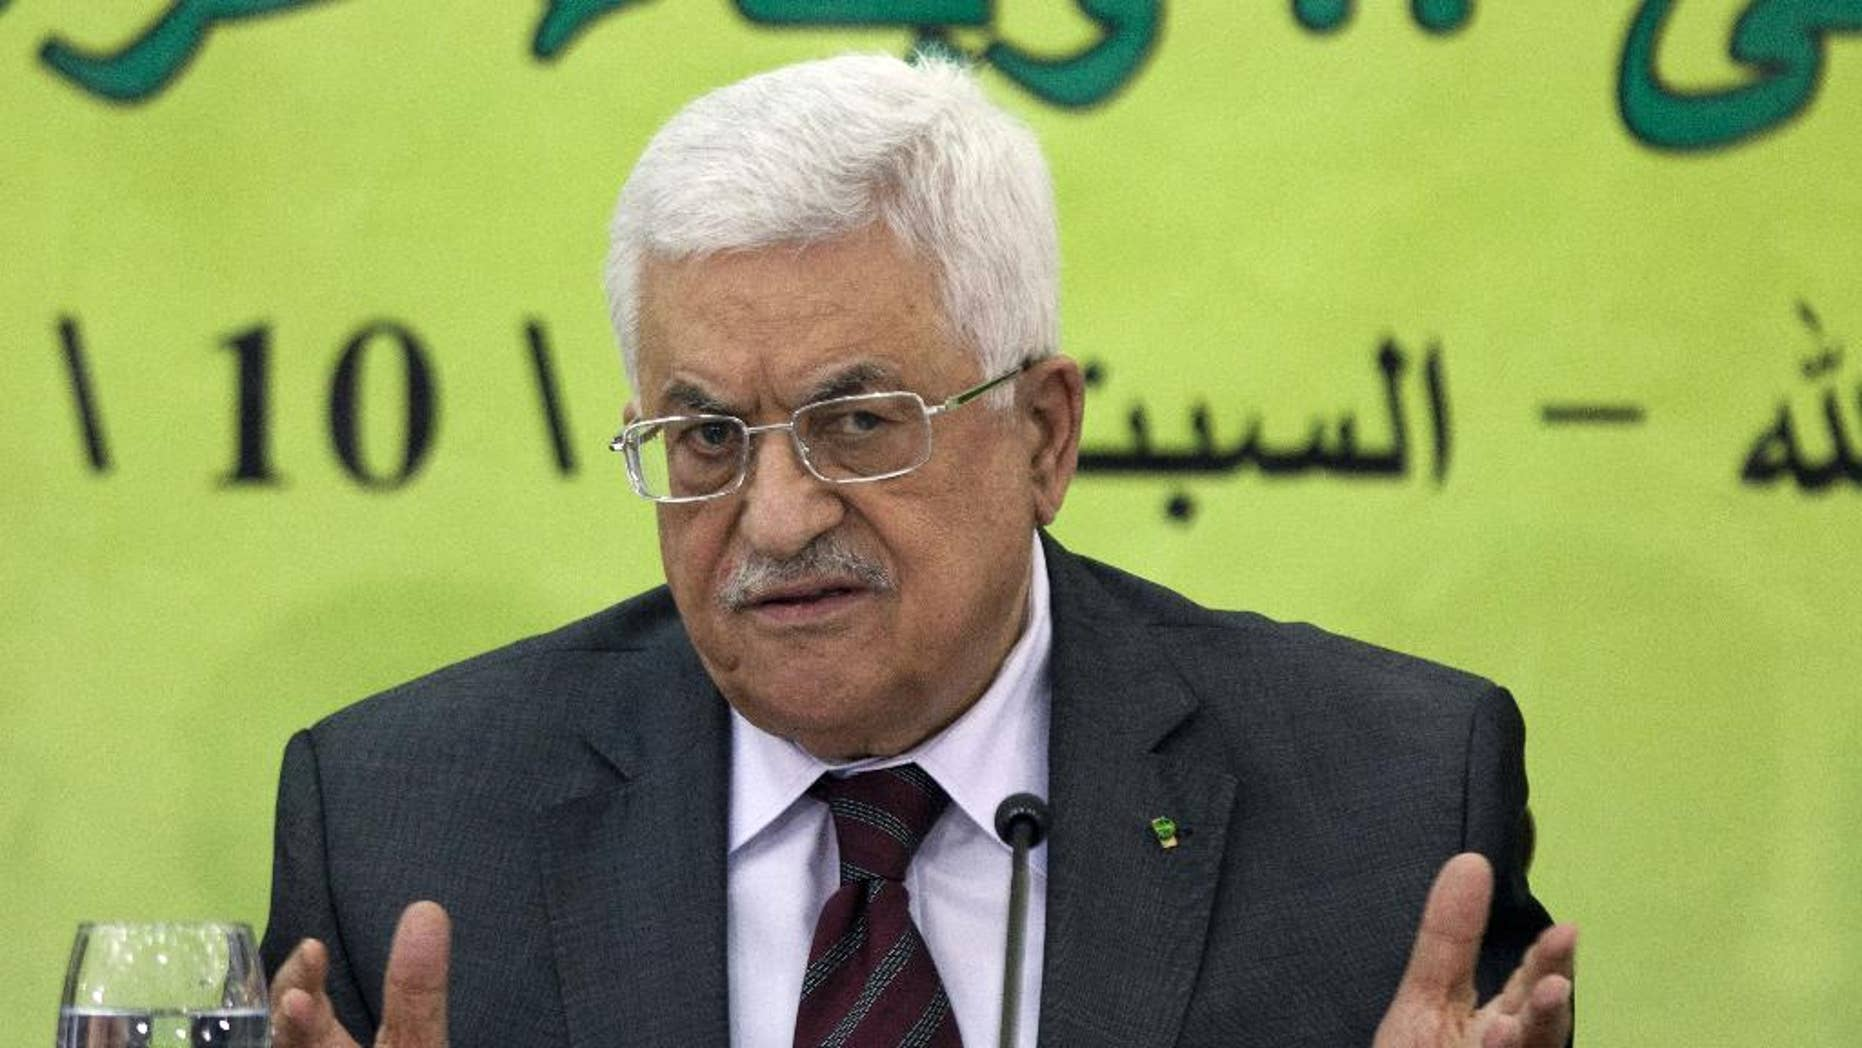 FILE - In this Oct. 18, 2014 file photo, Palestinian President Mahmoud Abbas speaks during a meeting of the Fatah revolutionary council in the West Bank city of Ramallah. Abbas has threatened to stop security coordination with Israel if the country continues to withhold millions of dollars of Palestinian tax revenue, a senior Palestinian official said Sunday, Feb. 22, 2015. Nabil Shaath said President Mahmoud Abbas warned European leaders on a trip to Europe last week that Palestinian officials would discuss the matter during a Palestinian central council meeting next week. (AP Photo/Majdi Mohammed, File)